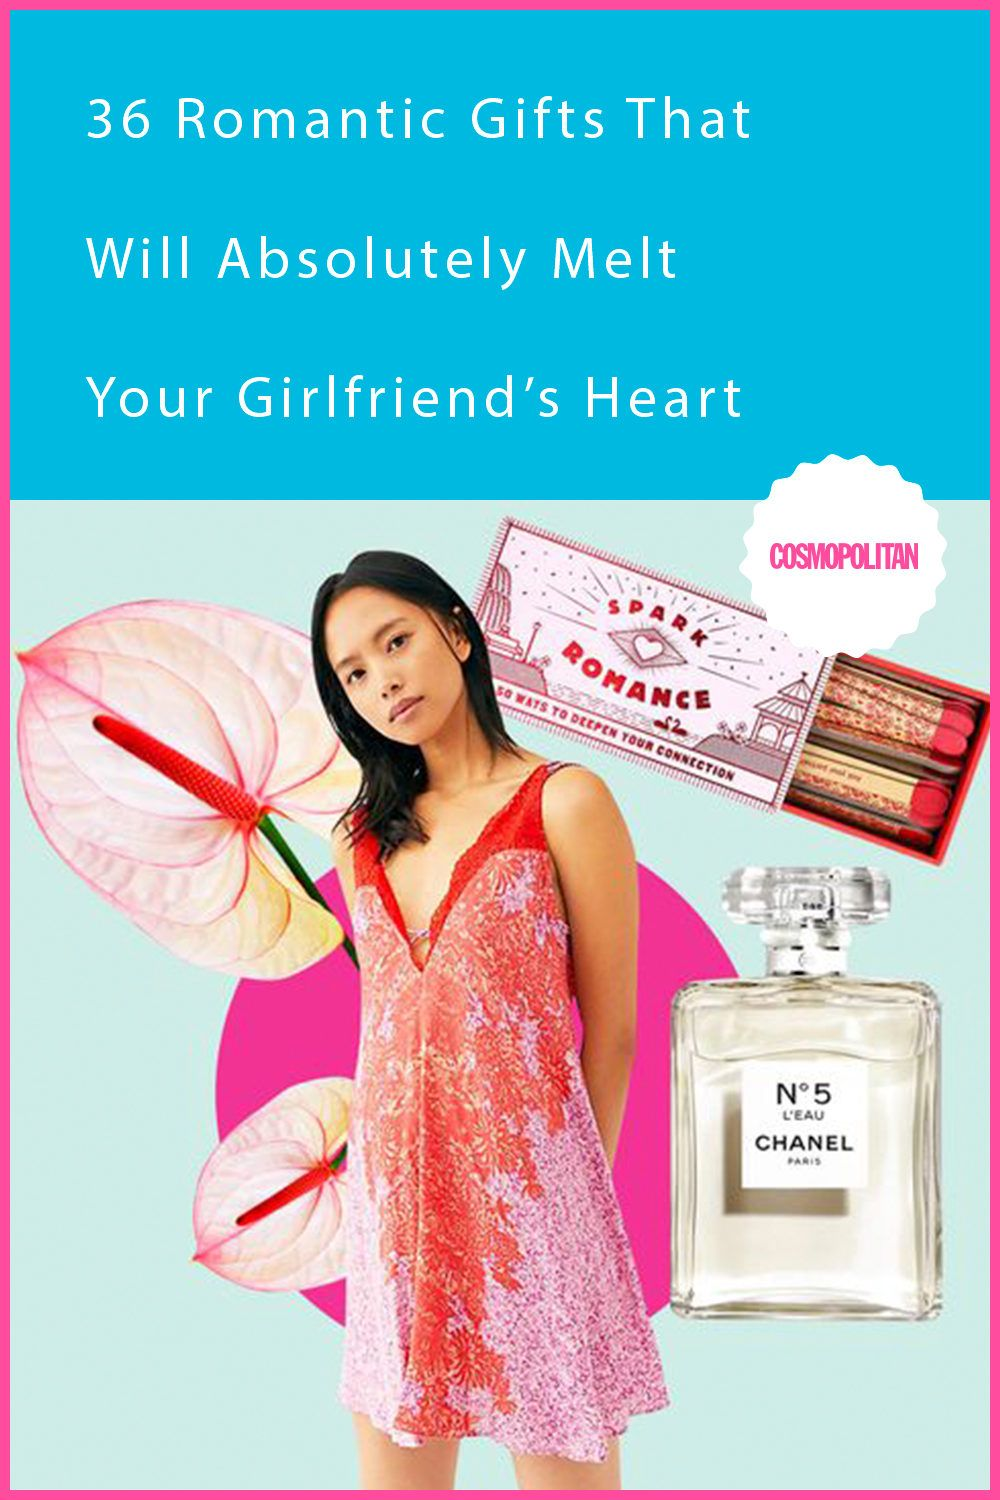 Your Girlfriend's Gonna LOVE These SuperRomantic Gifts